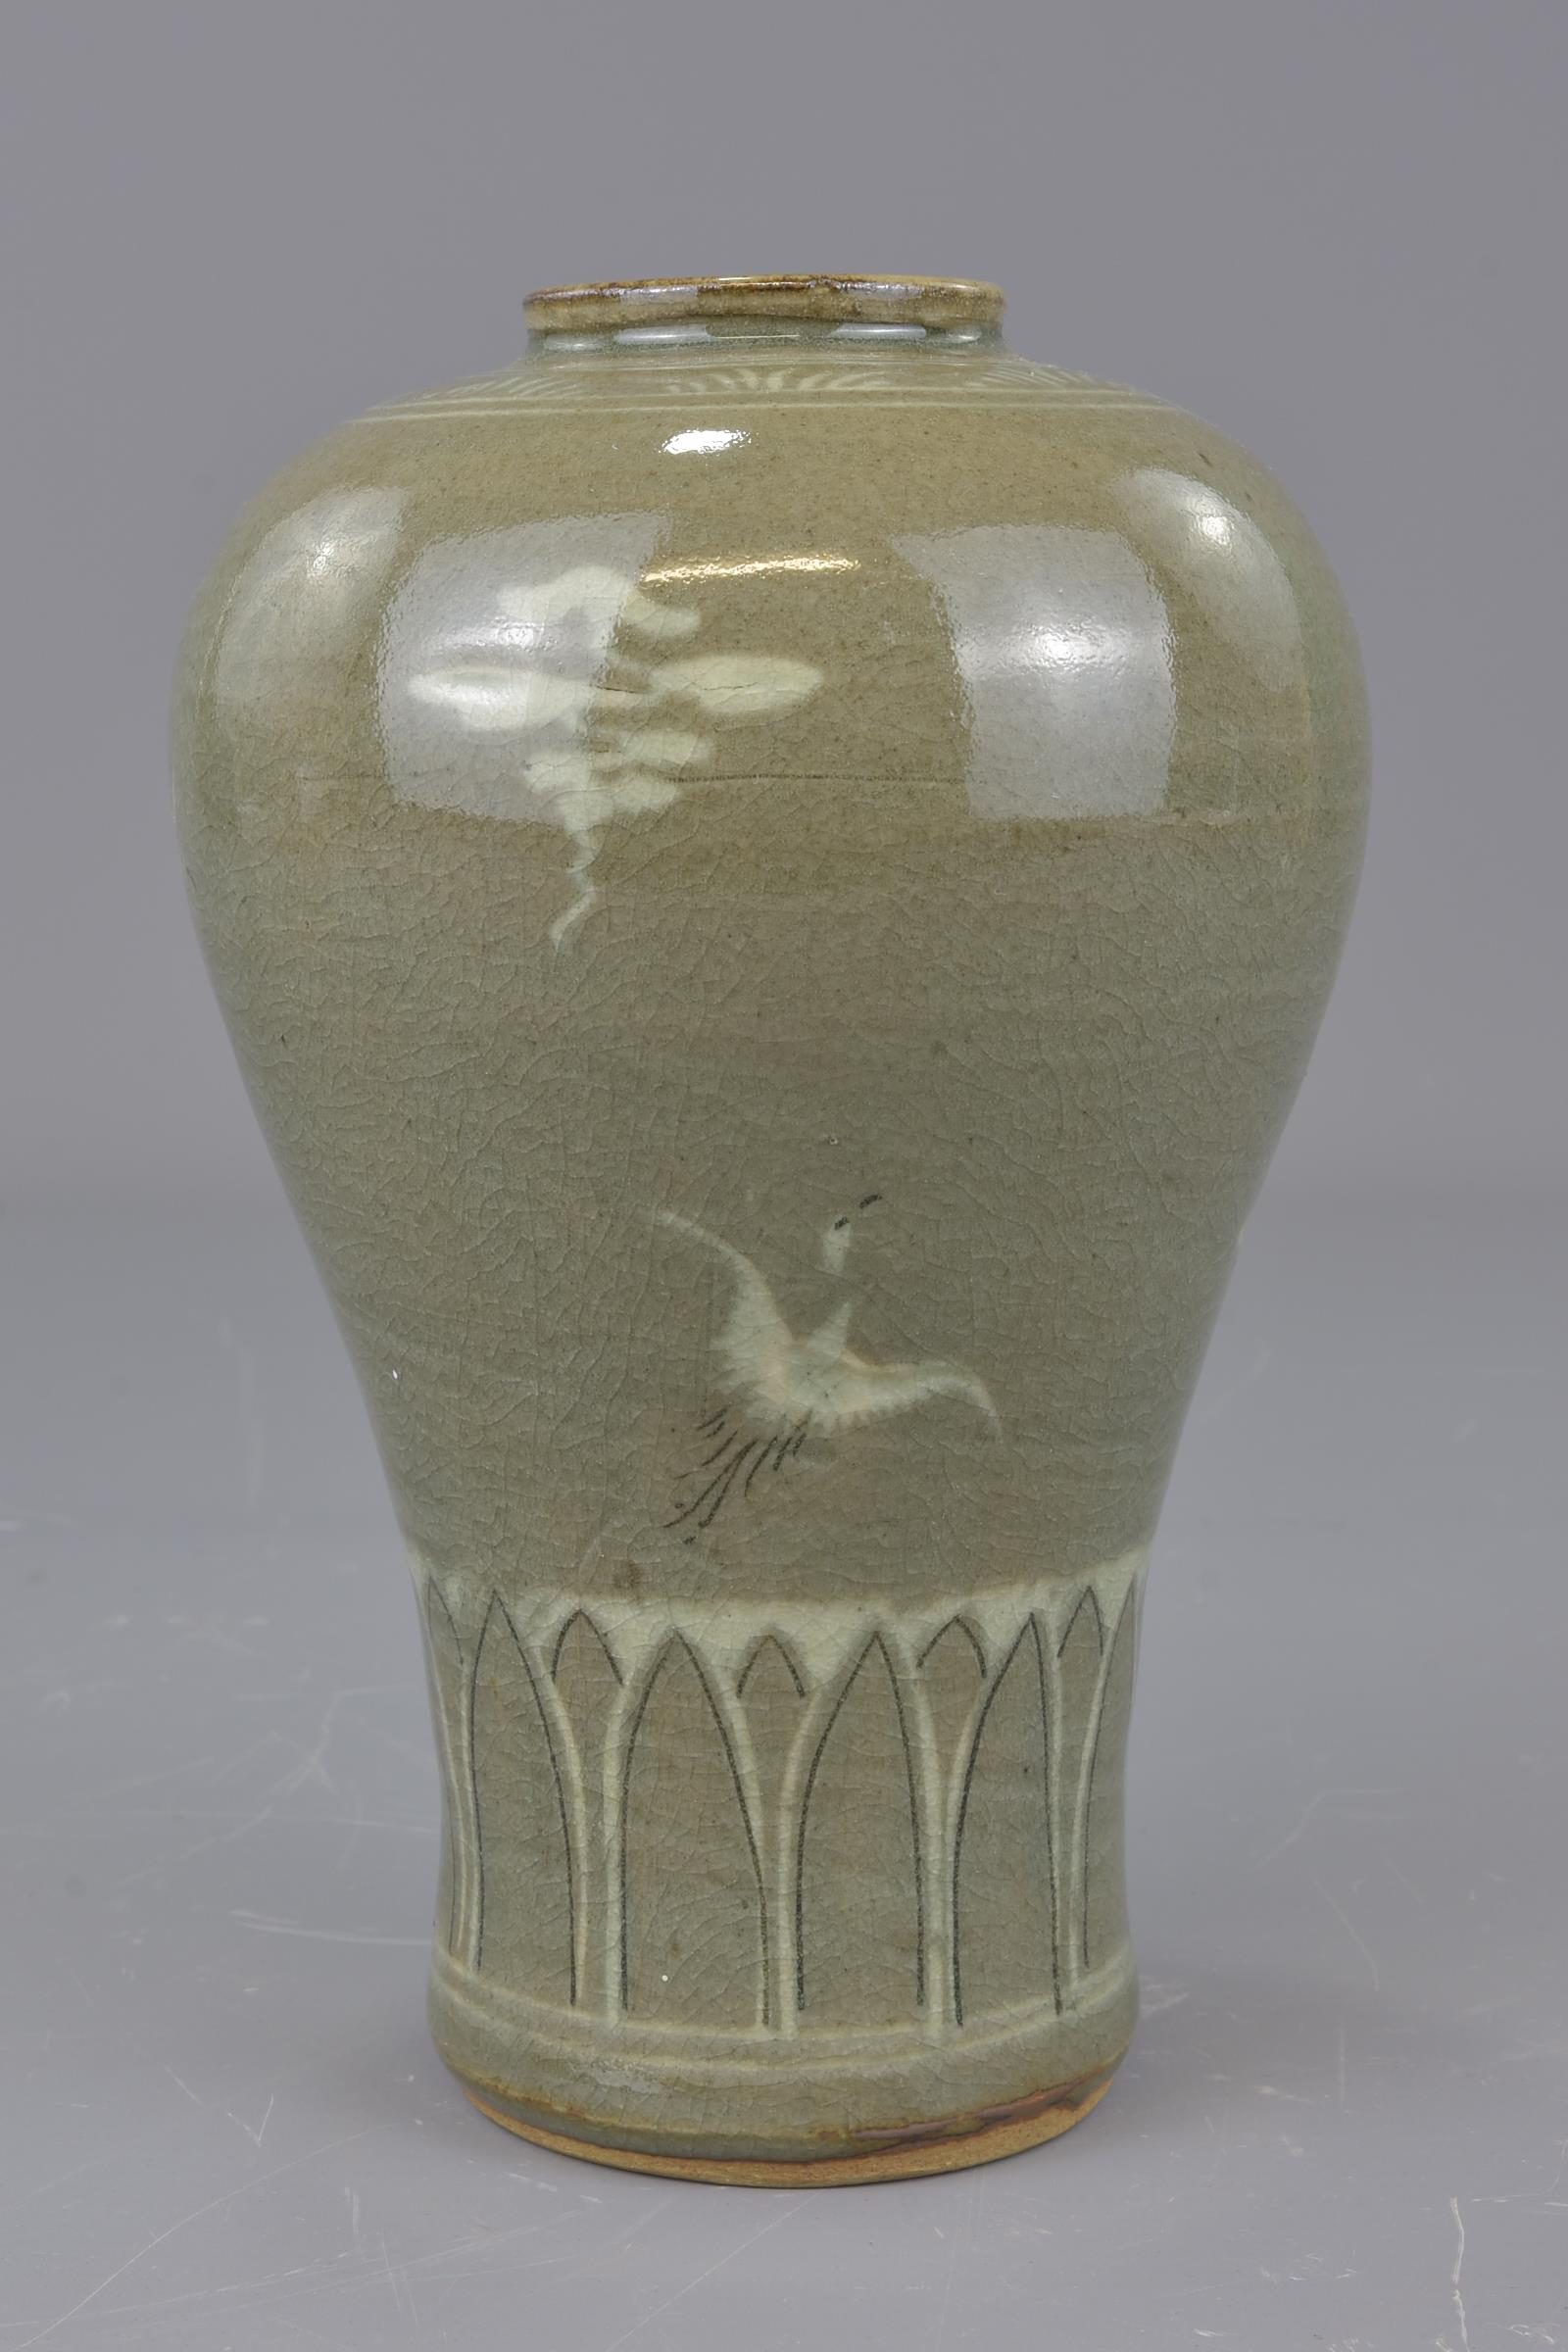 Lot 42 - Two Korean 20th century celadon porcelain items. One vase and one bowl. 15cm diameter and 19cm tall